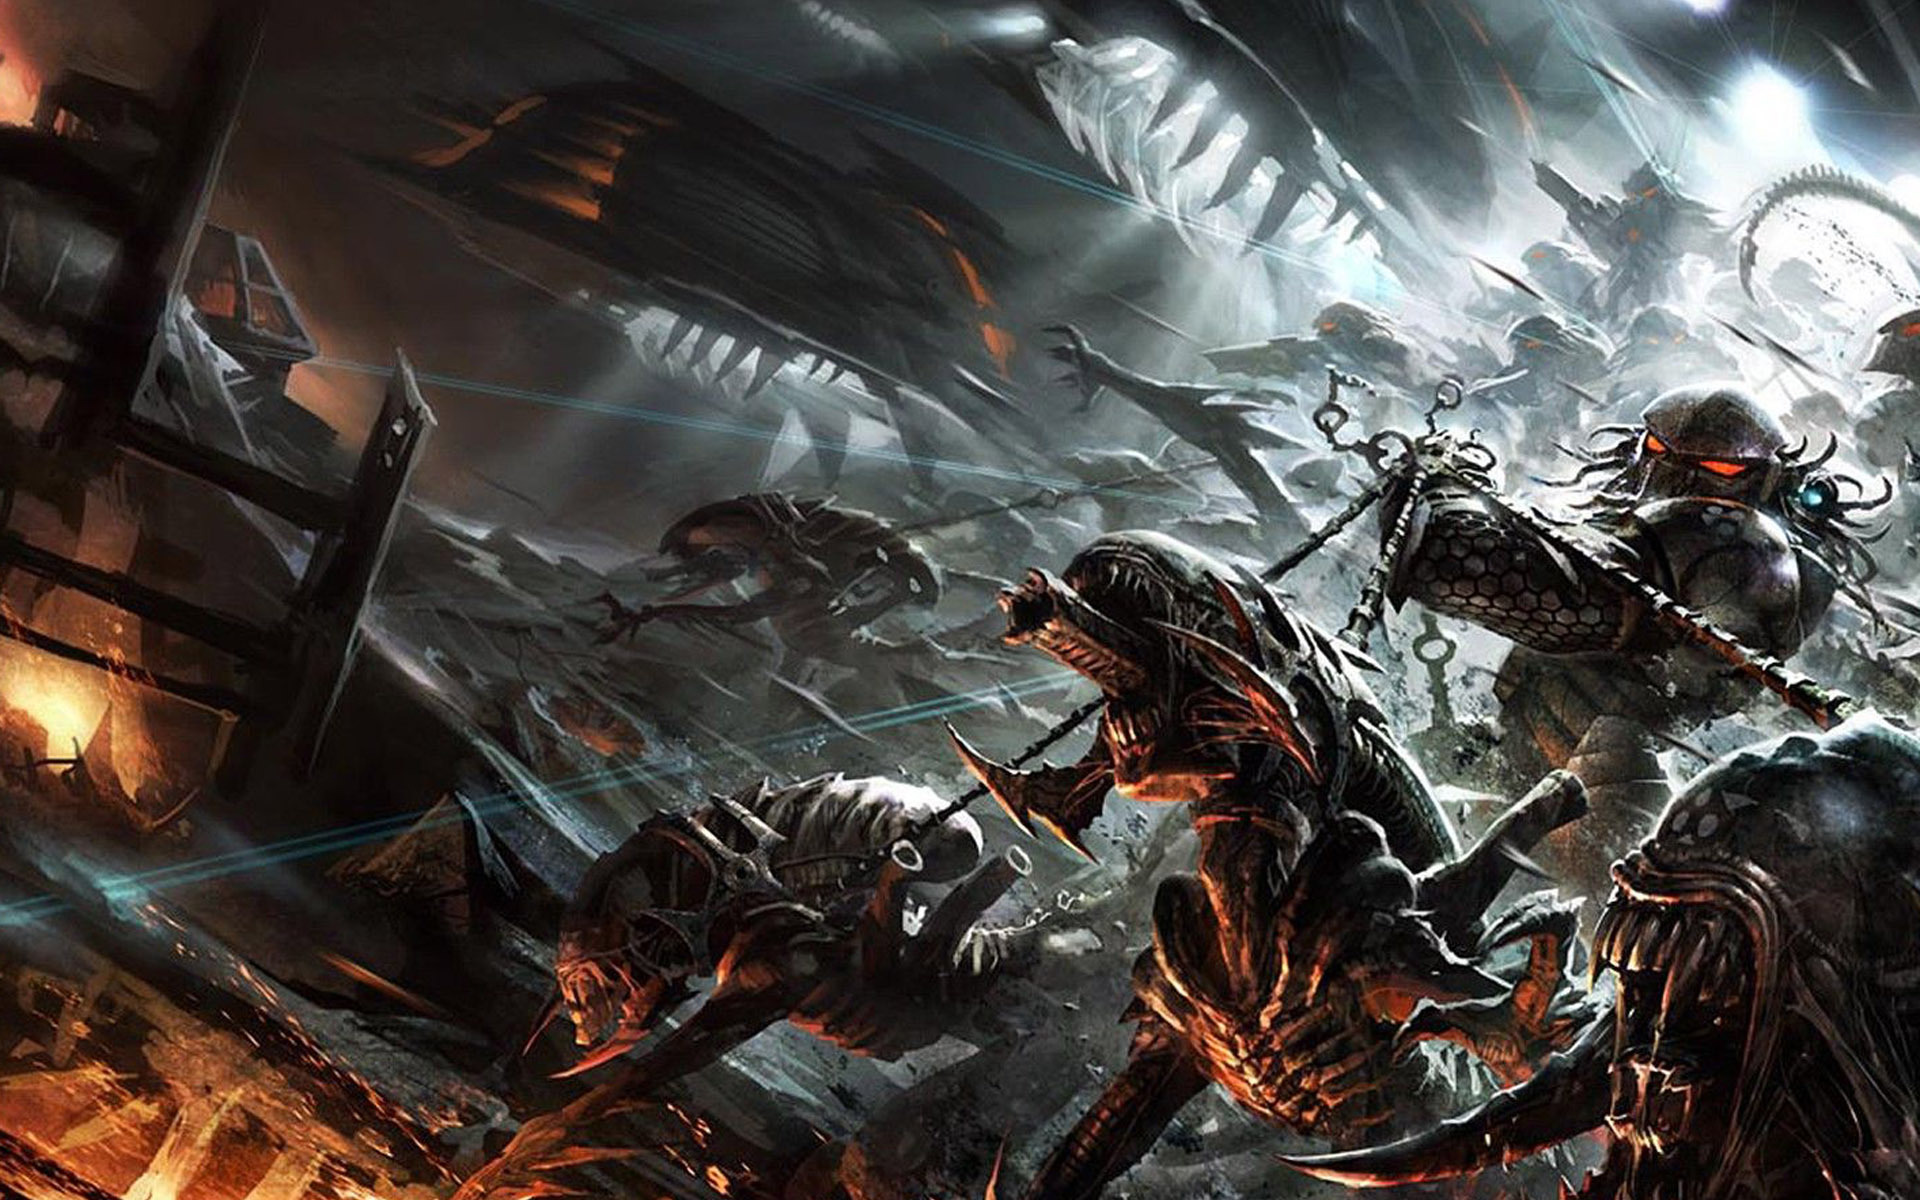 Alien Vs Predator Wallpaper Hd Predator Wallpa...